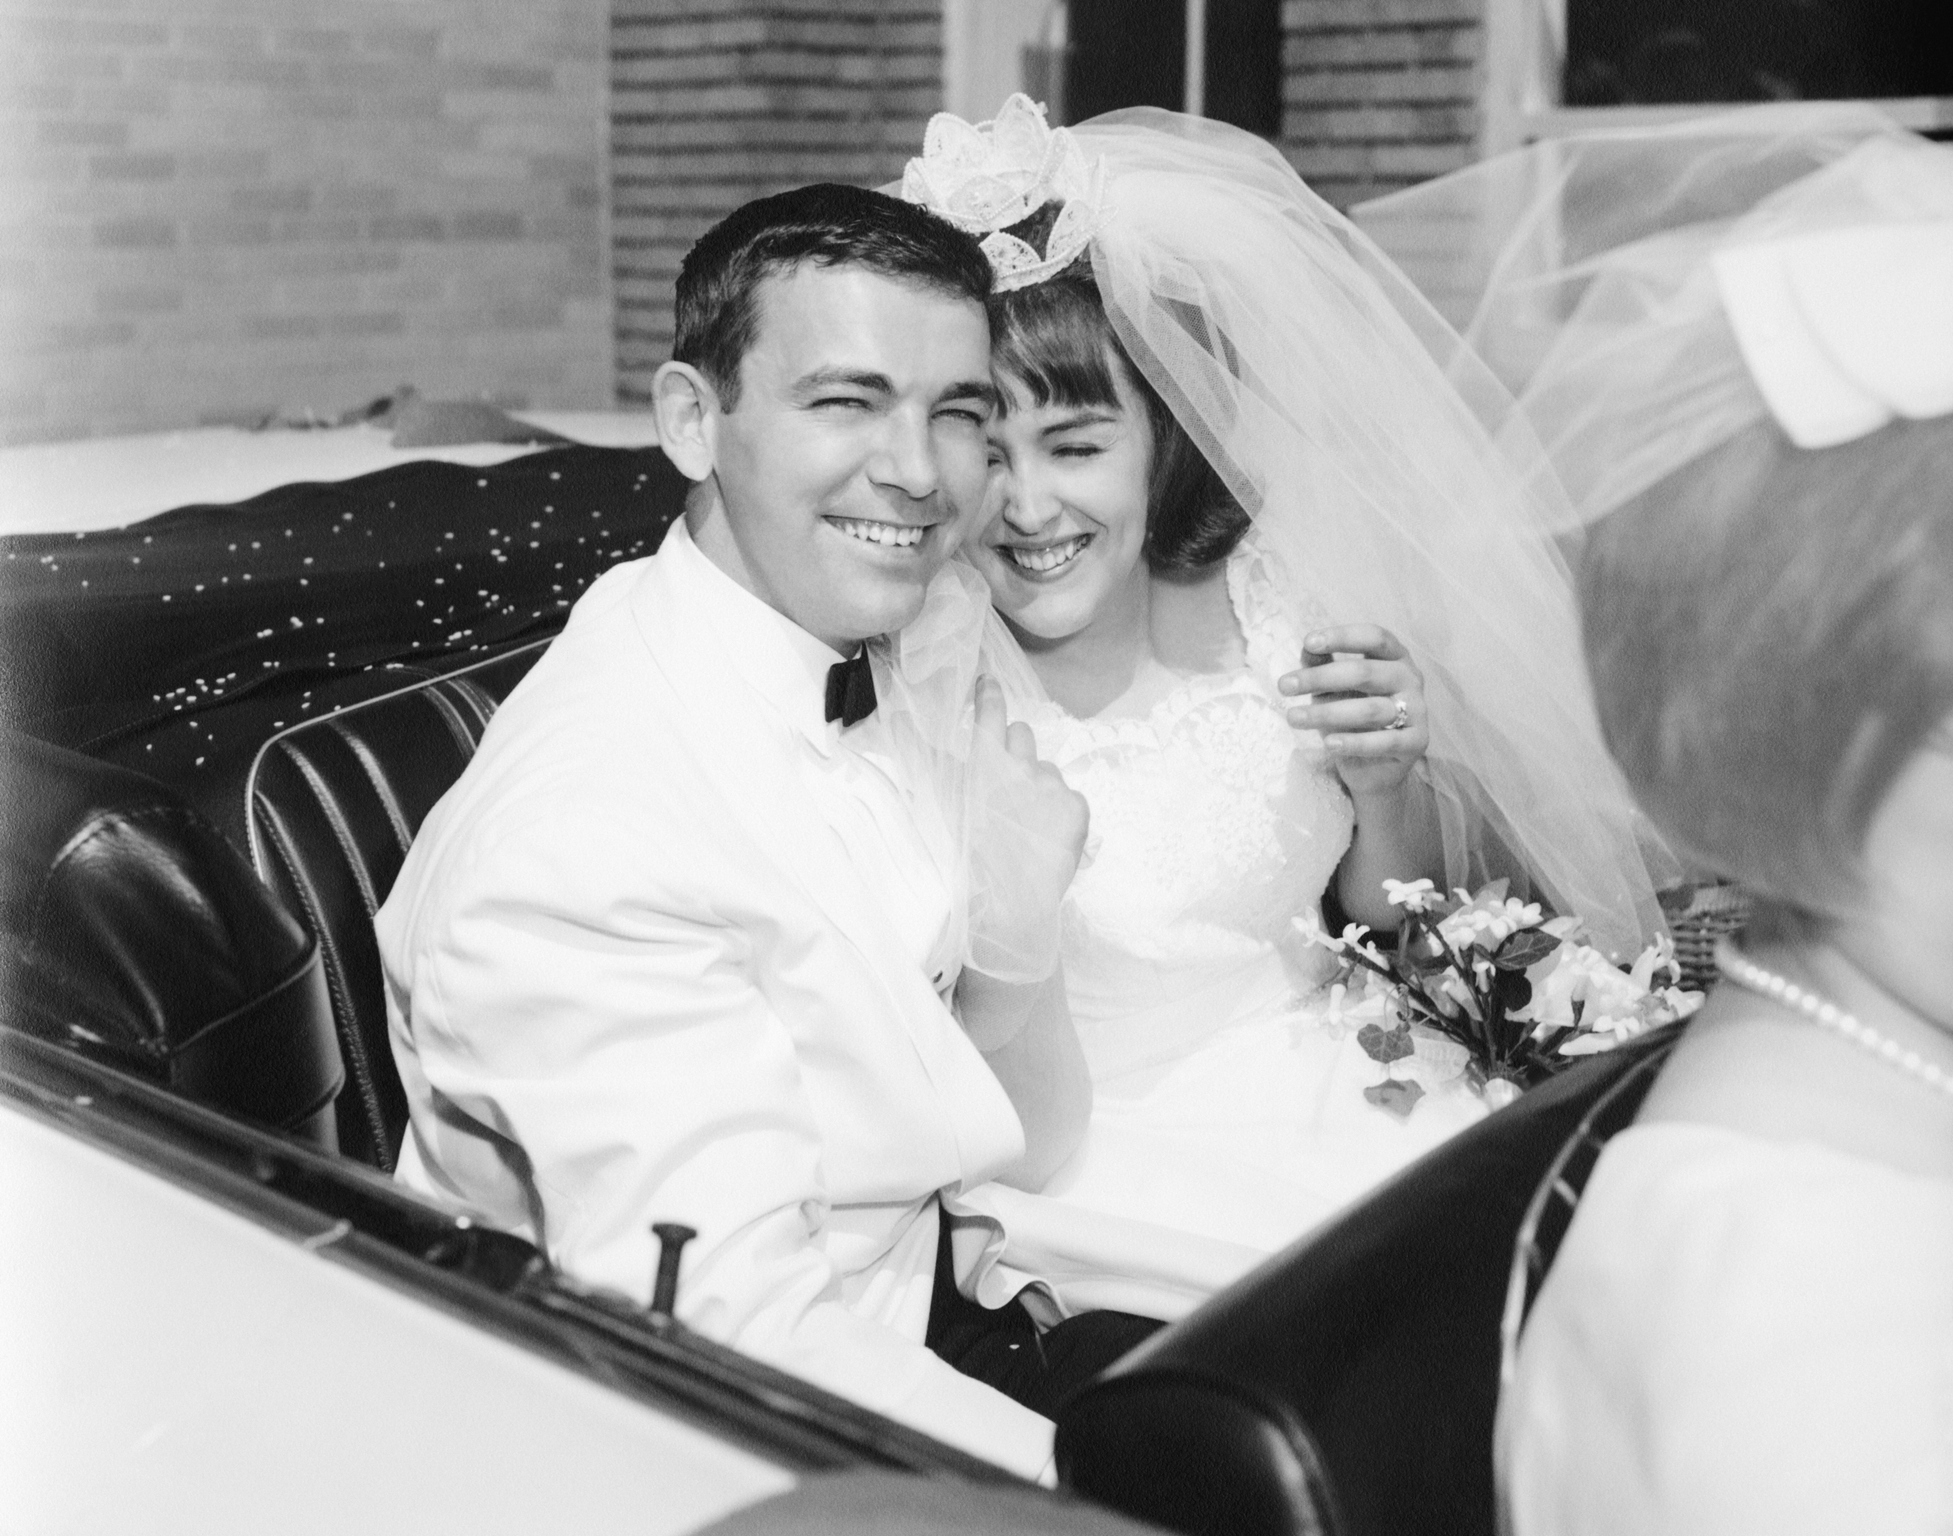 Newlyweds Smiling in Car